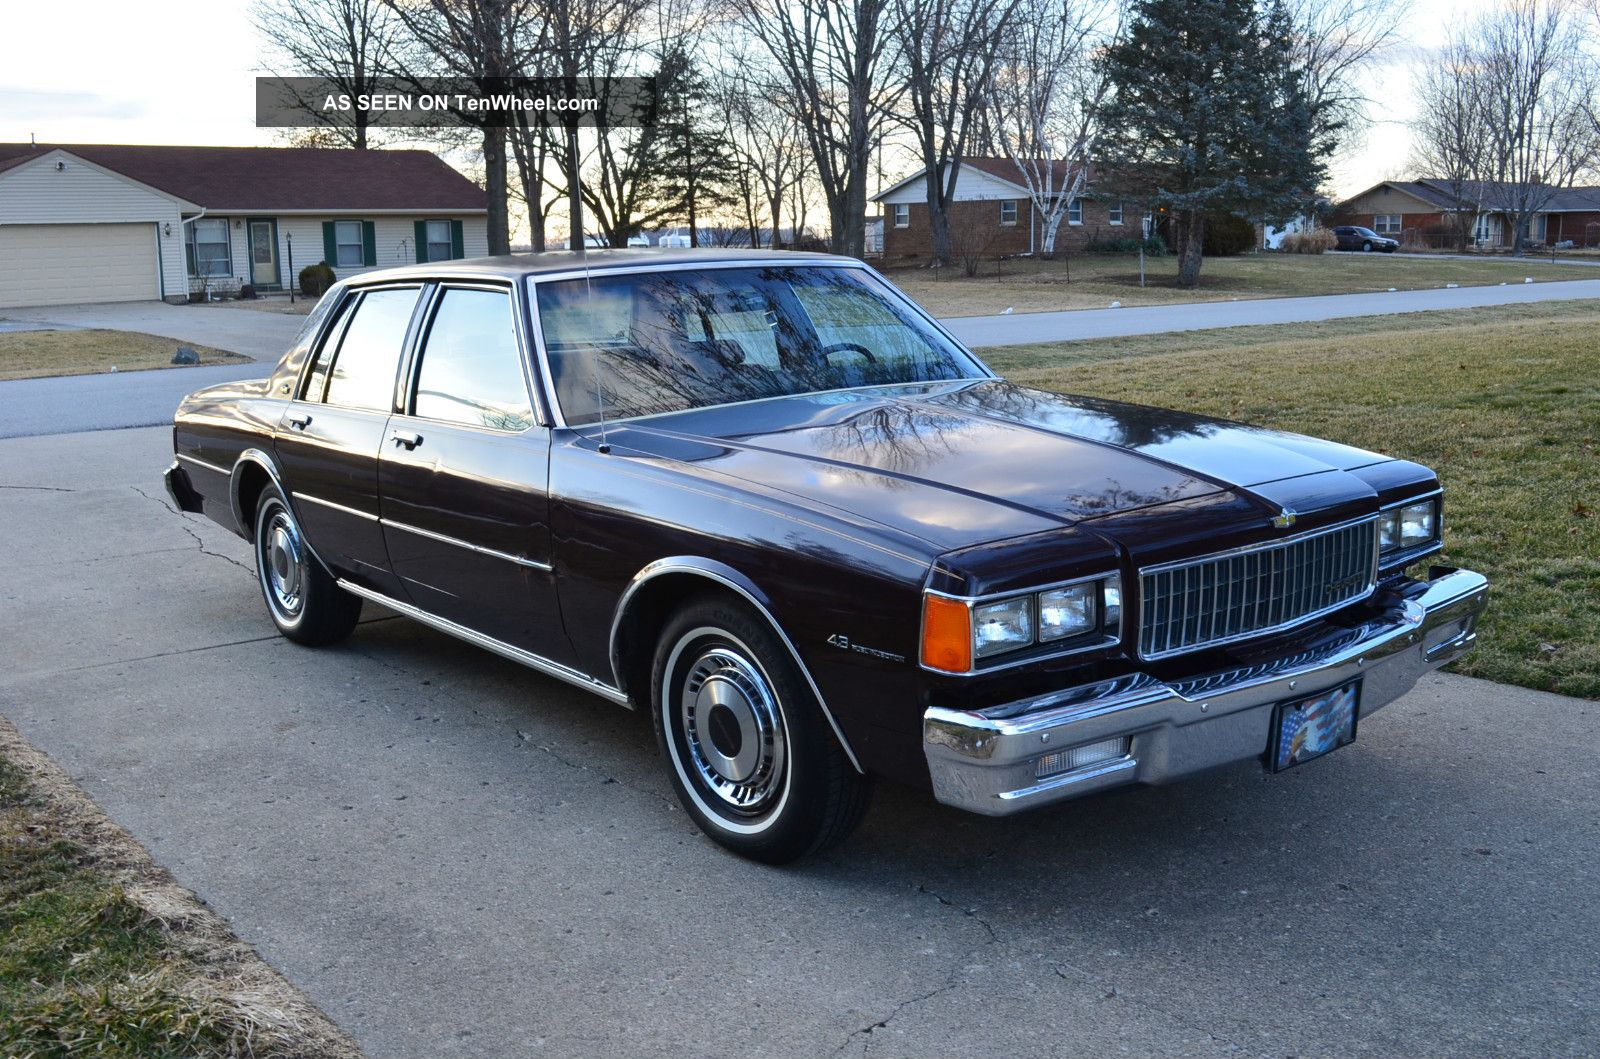 1985 Chevrolet Caprice Classic Sedan 4  Door 4. 3l Caprice photo 2